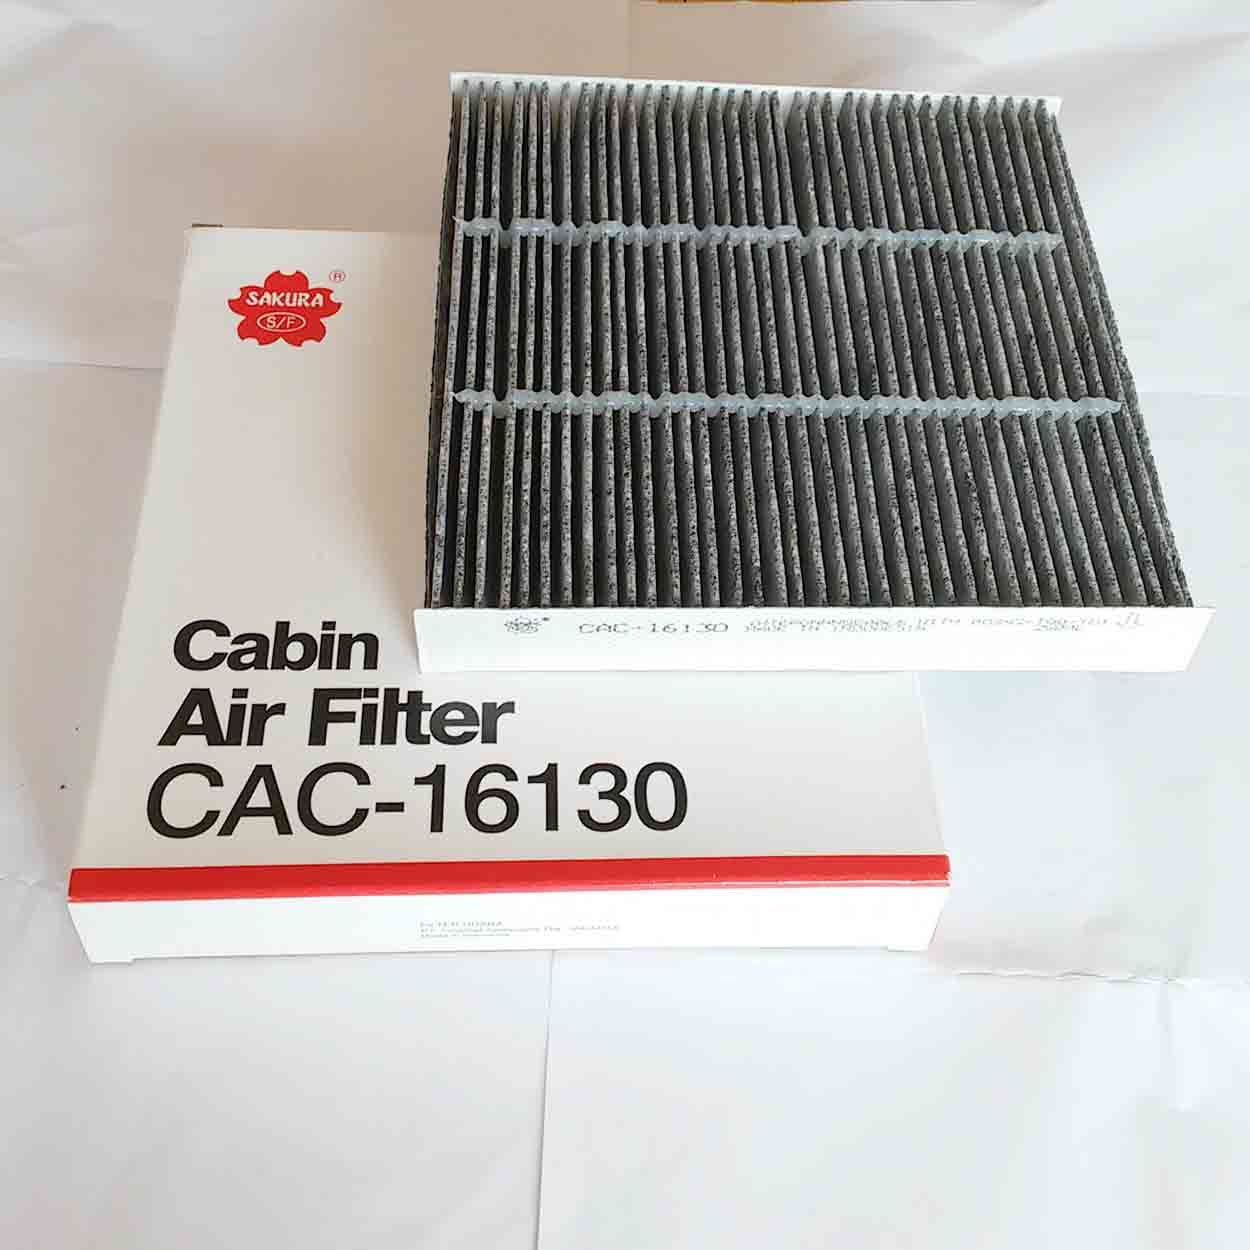 Filter AC Jazz Tahun > 2008 & City 2009, Freed CAC-16130 (Carbon Type)